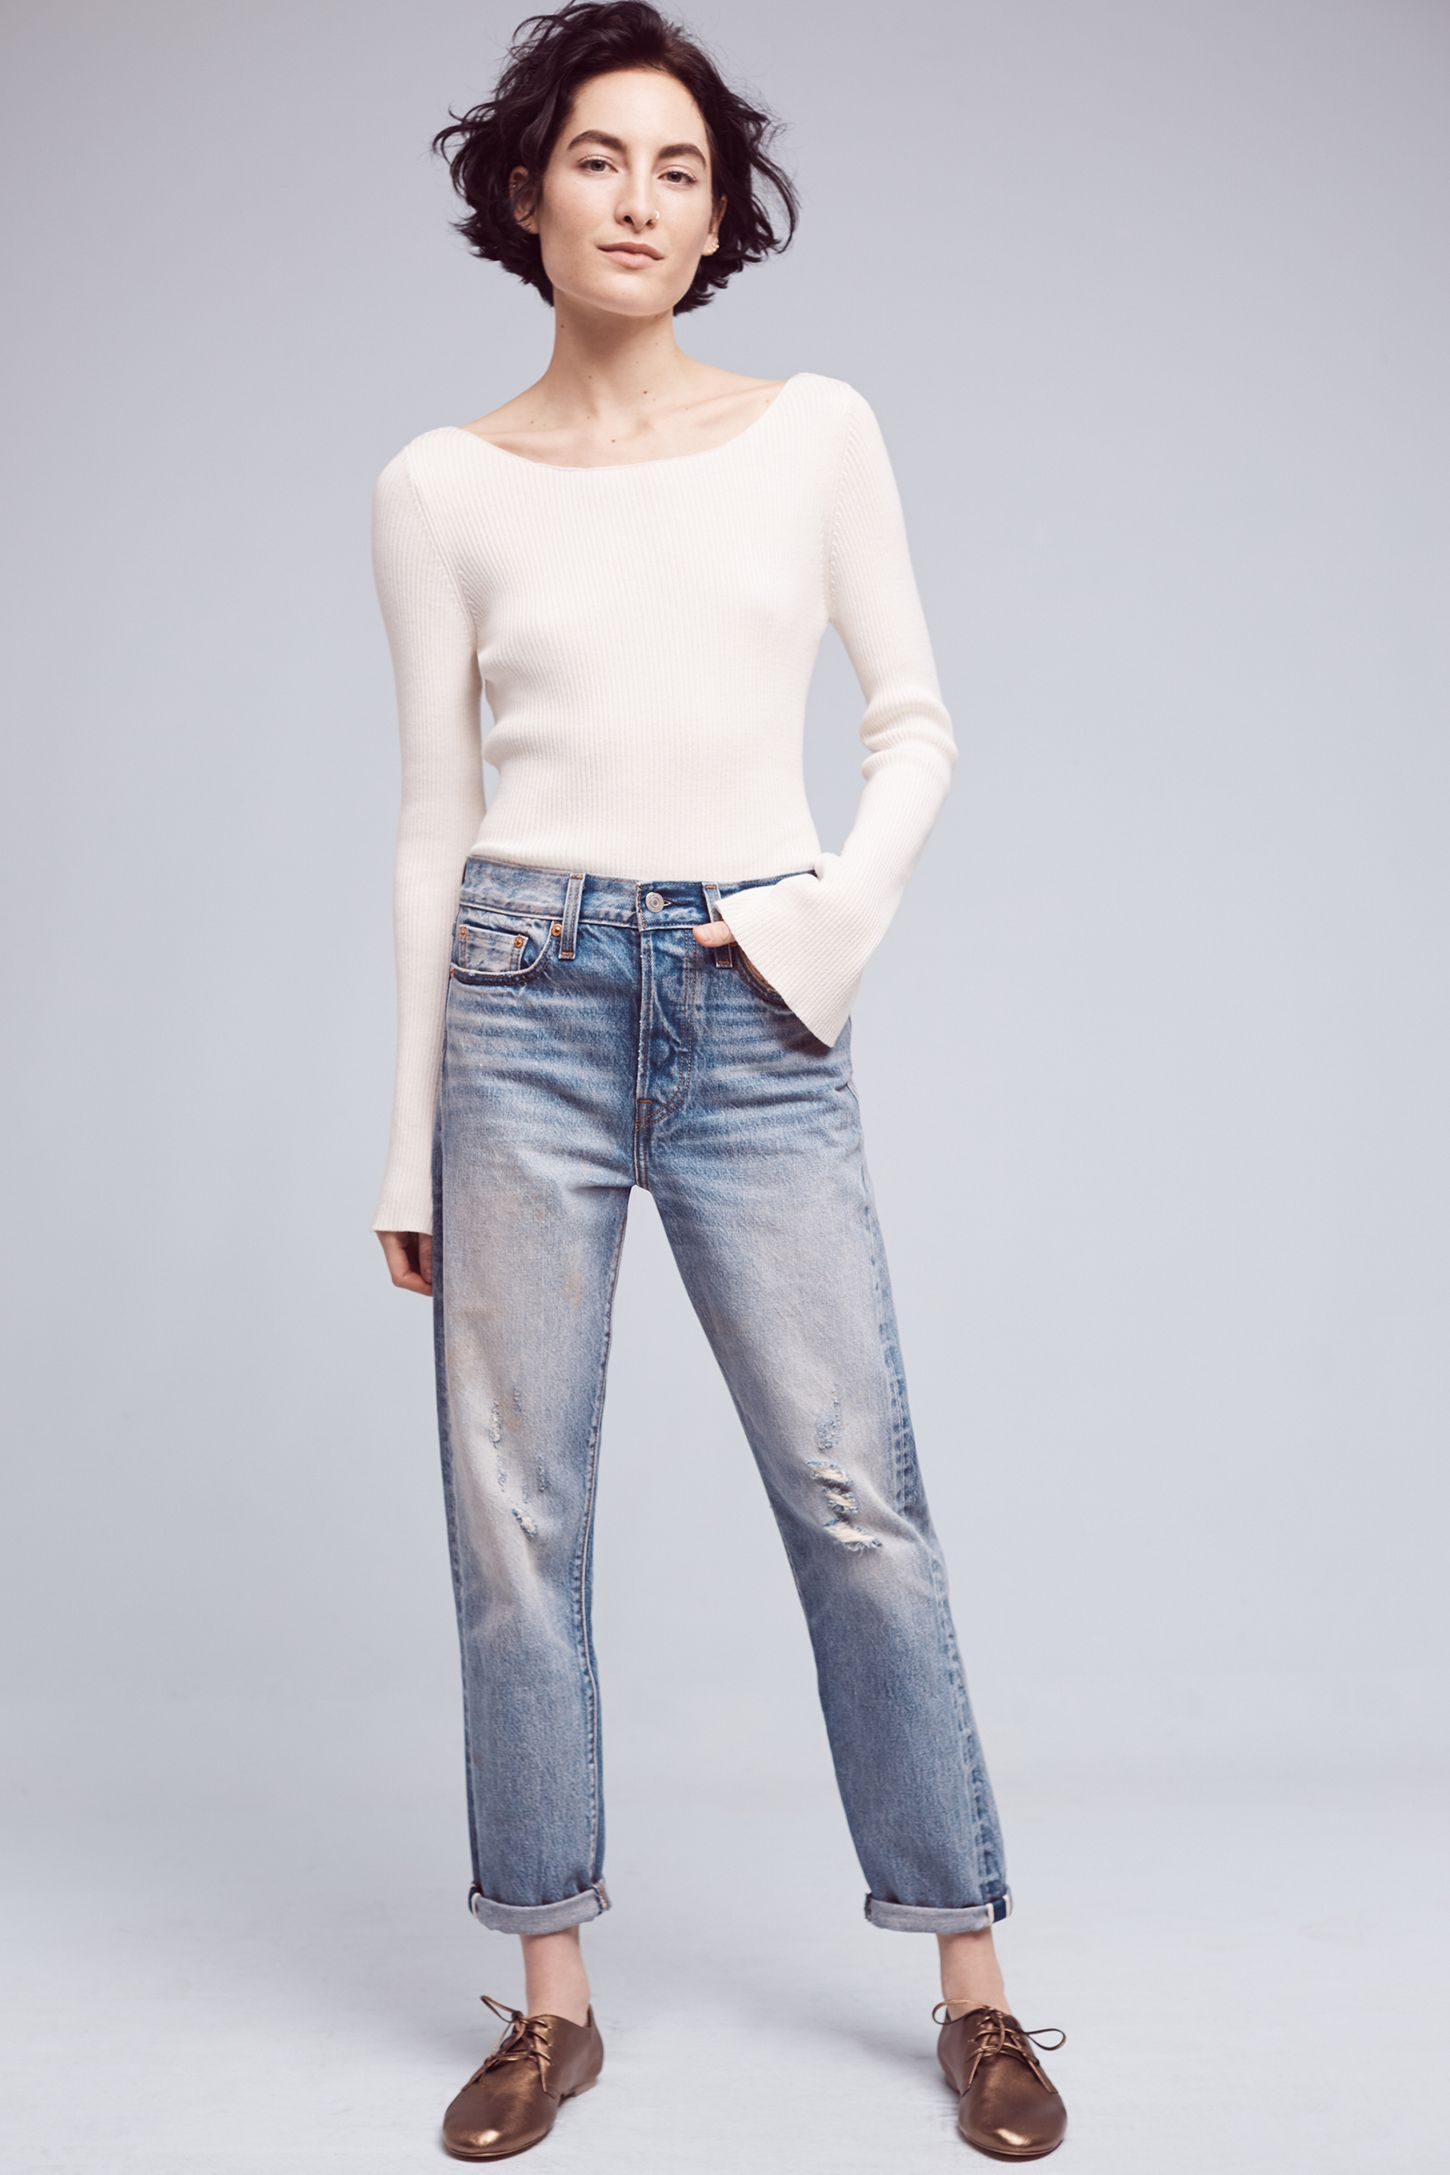 872590d603cf1 Levi's Wedgie High-Rise Straight Jeans | Anthropologie